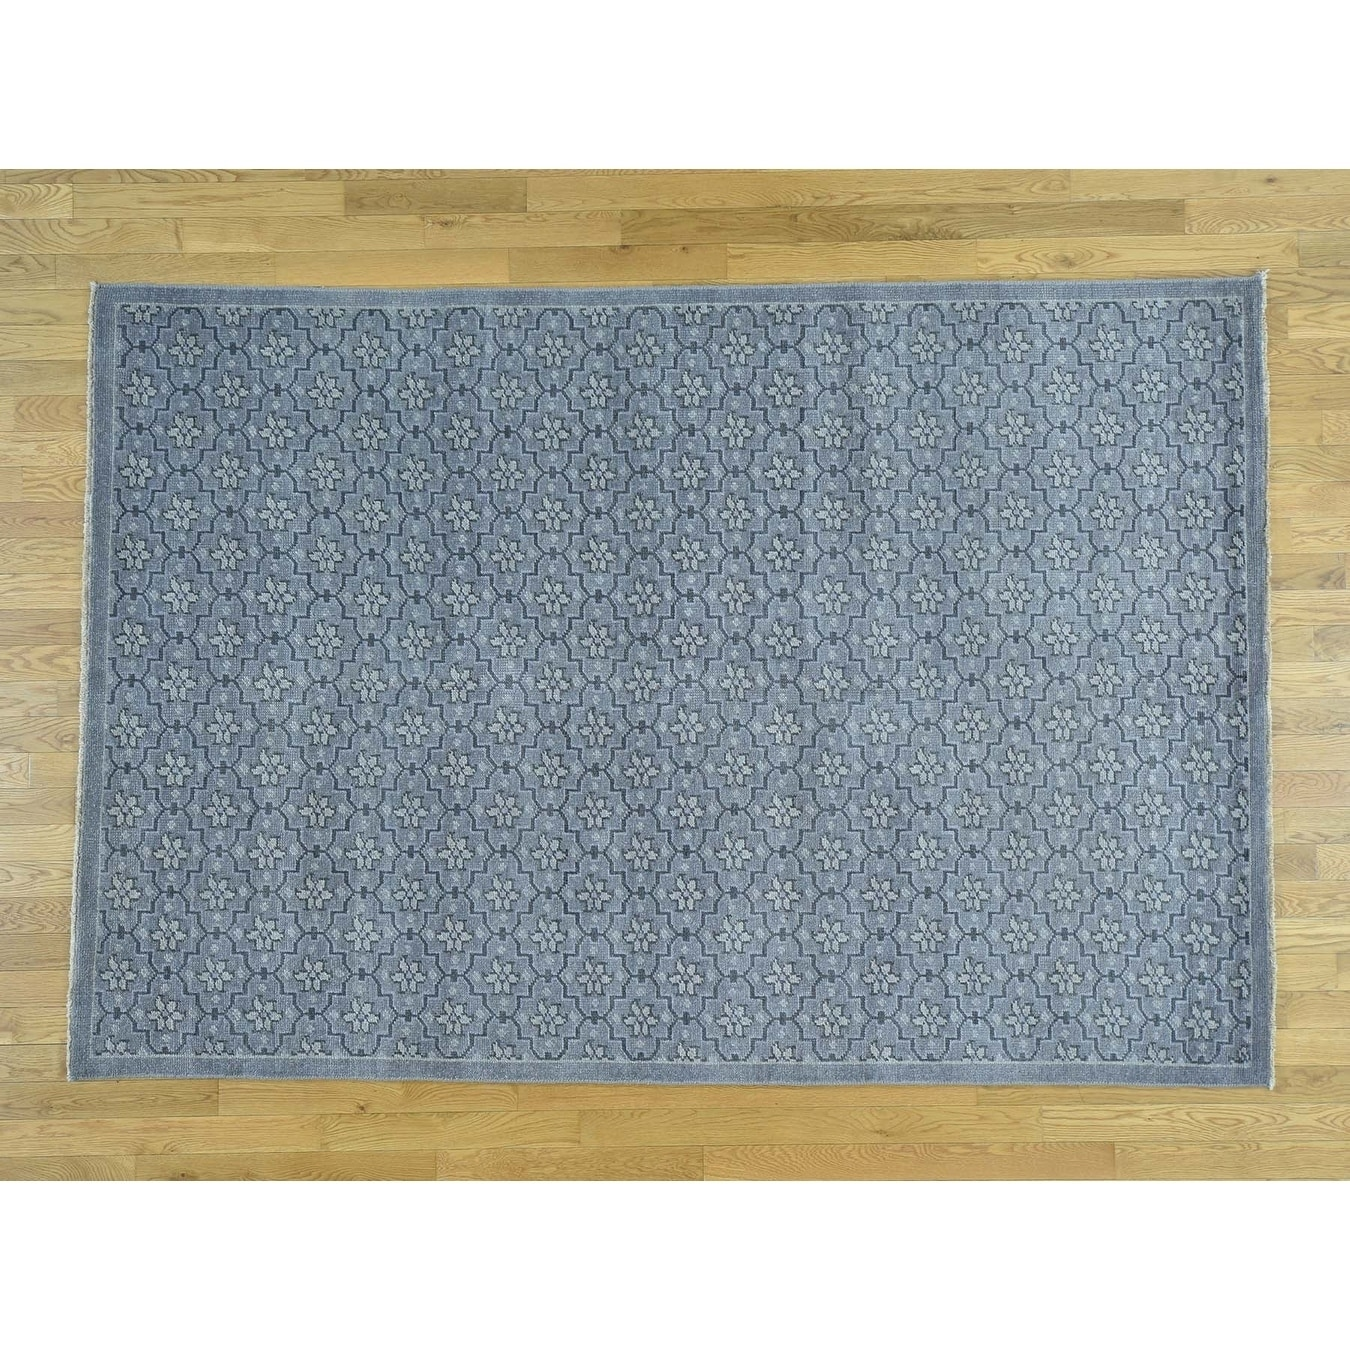 Hand Knotted Blue Oushak And Peshawar with Wool Oriental Rug - 89 x 1110